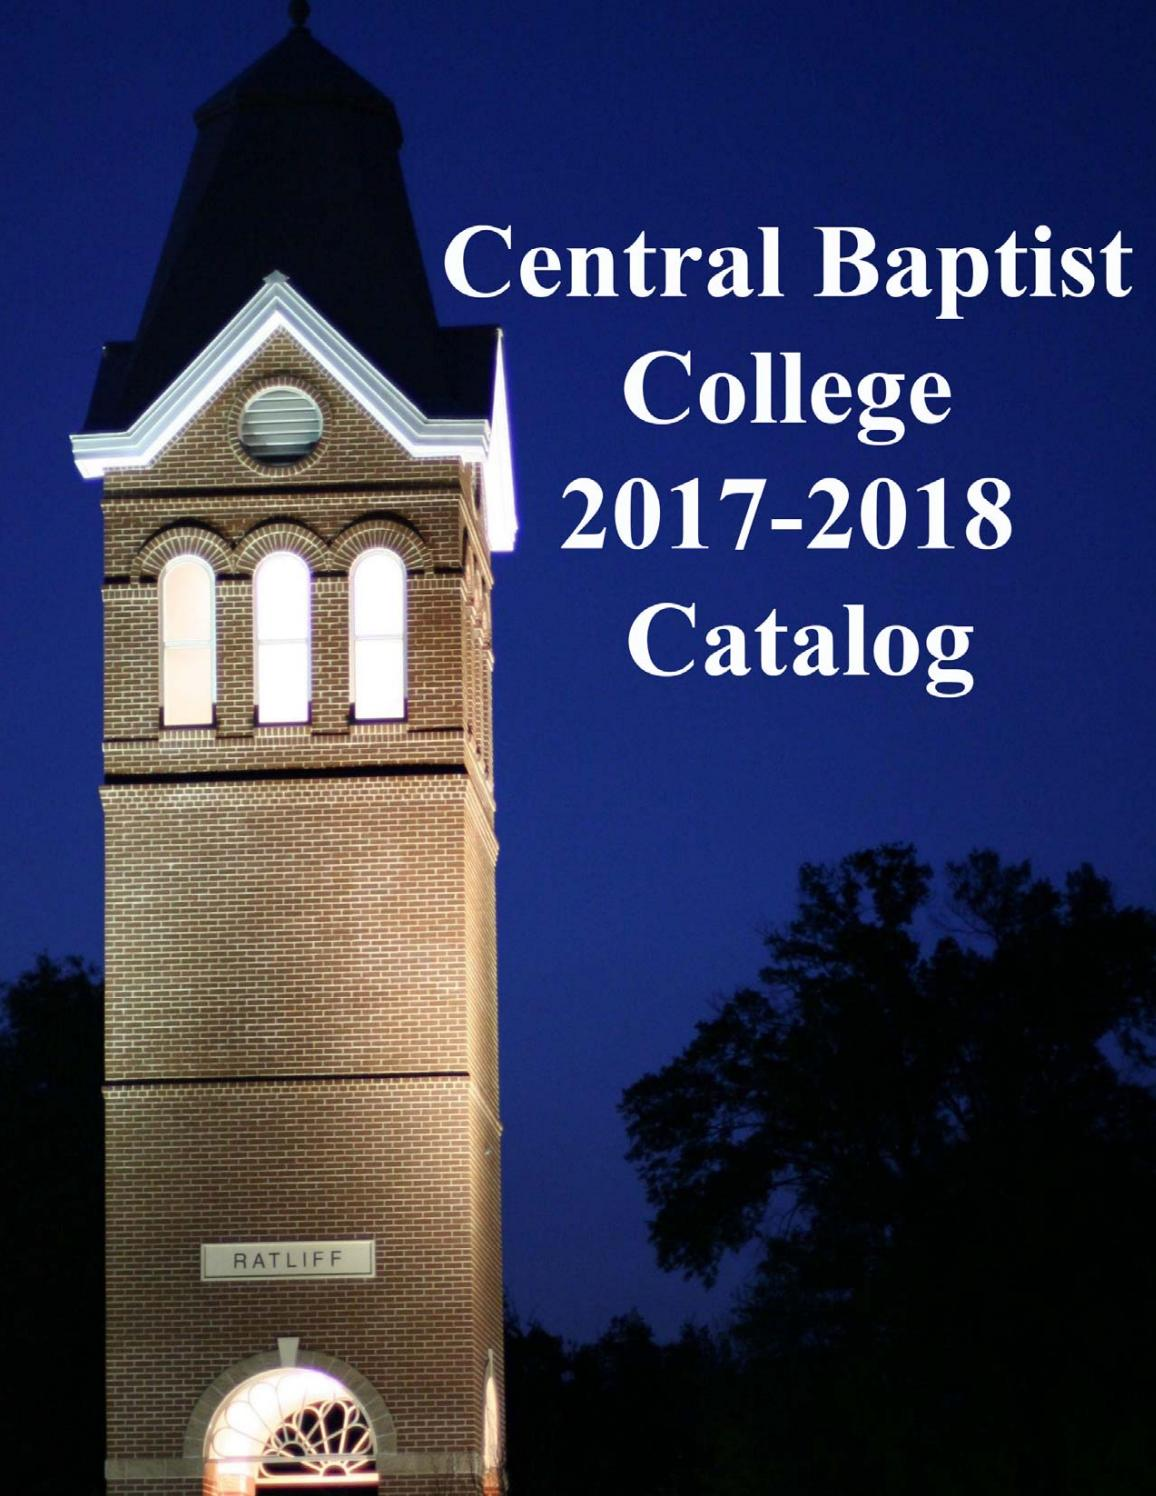 Cbc catalog 2017 18 by Central Baptist College - issuu